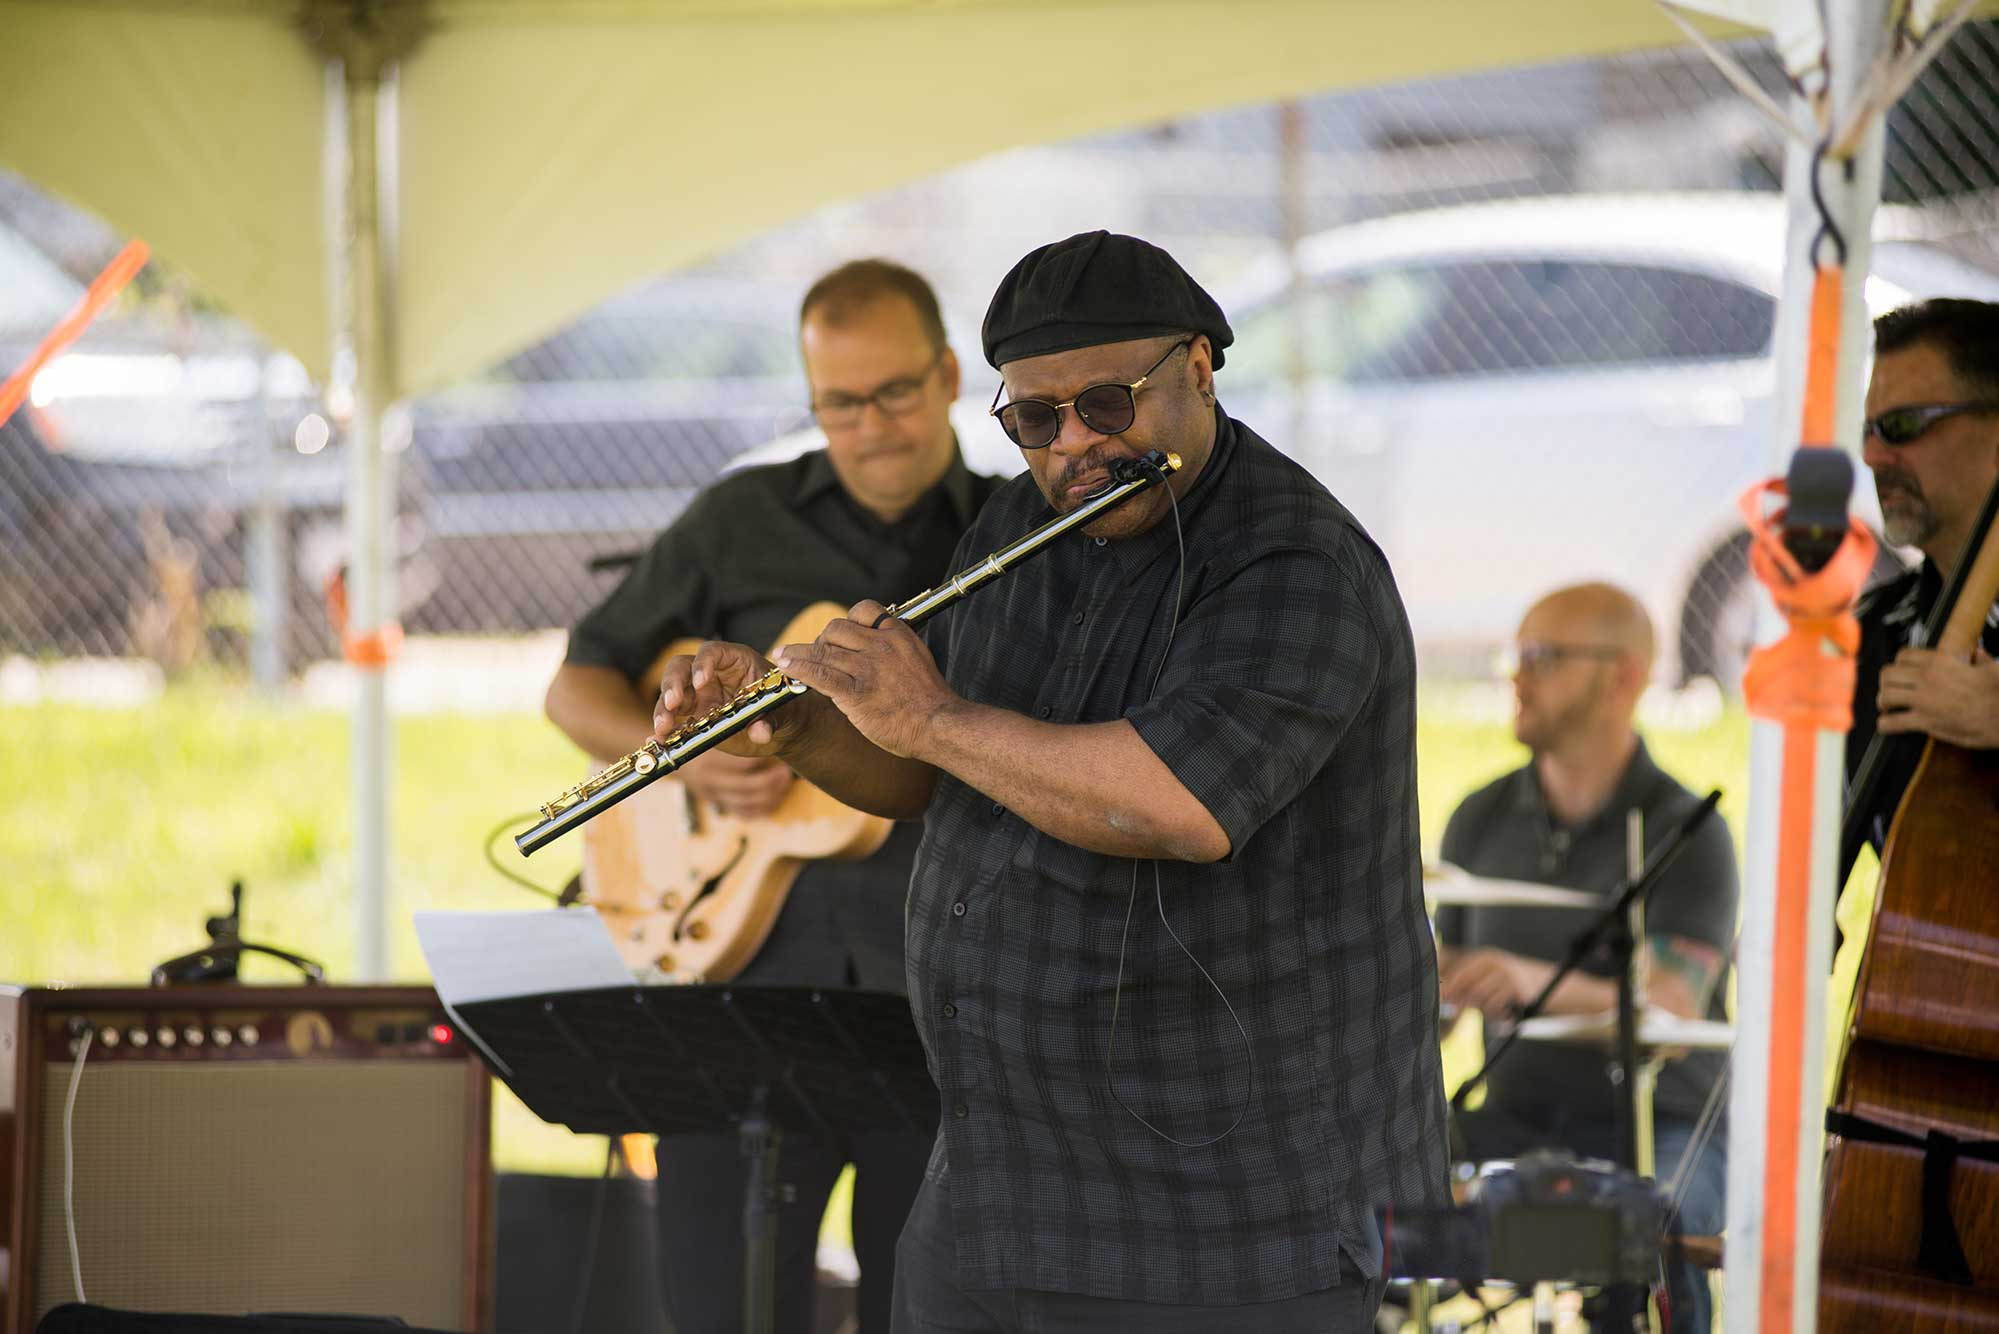 Photo of Lance Martin and The Lance Martin Trio perform during JazzFest in West Roxbury last year. Martin plays a flute, a bassist and drummer are seen in the background at an outdoor venue.